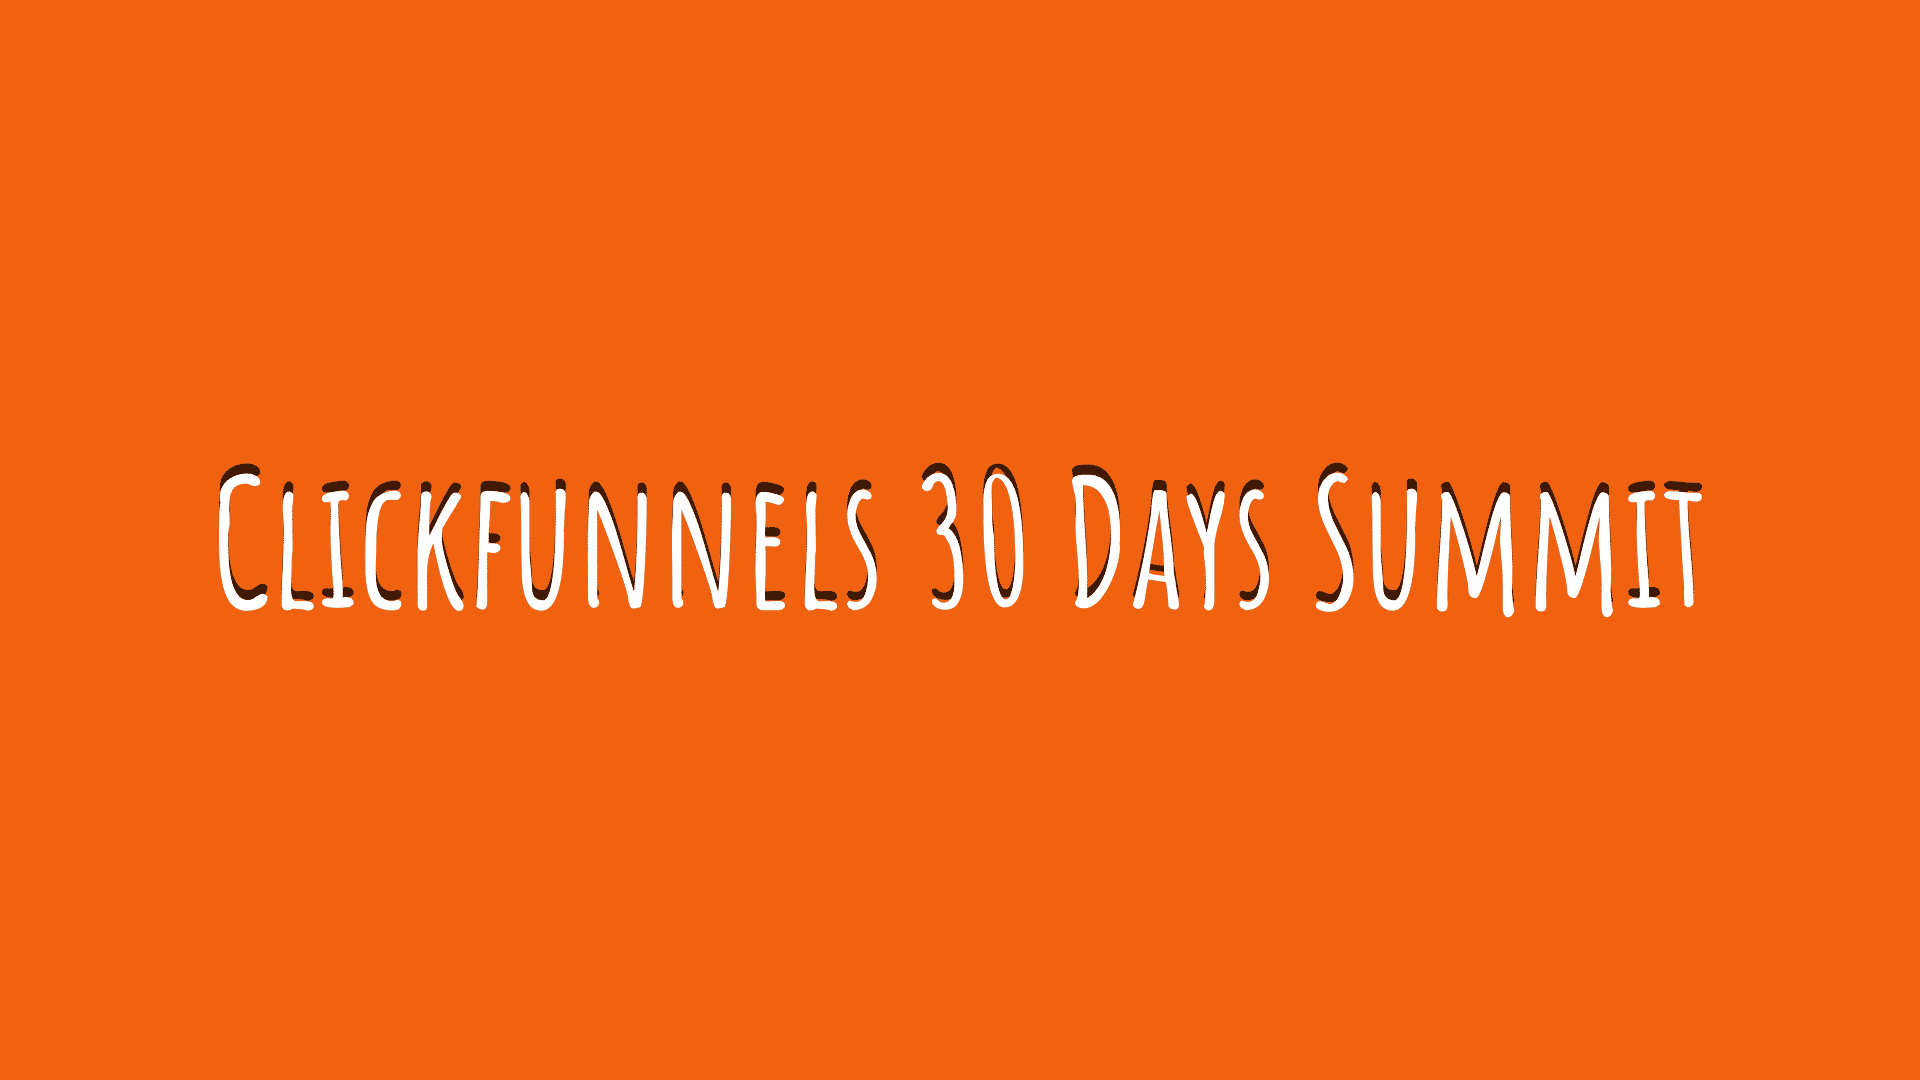 Clickfunnels 30 Days Summit